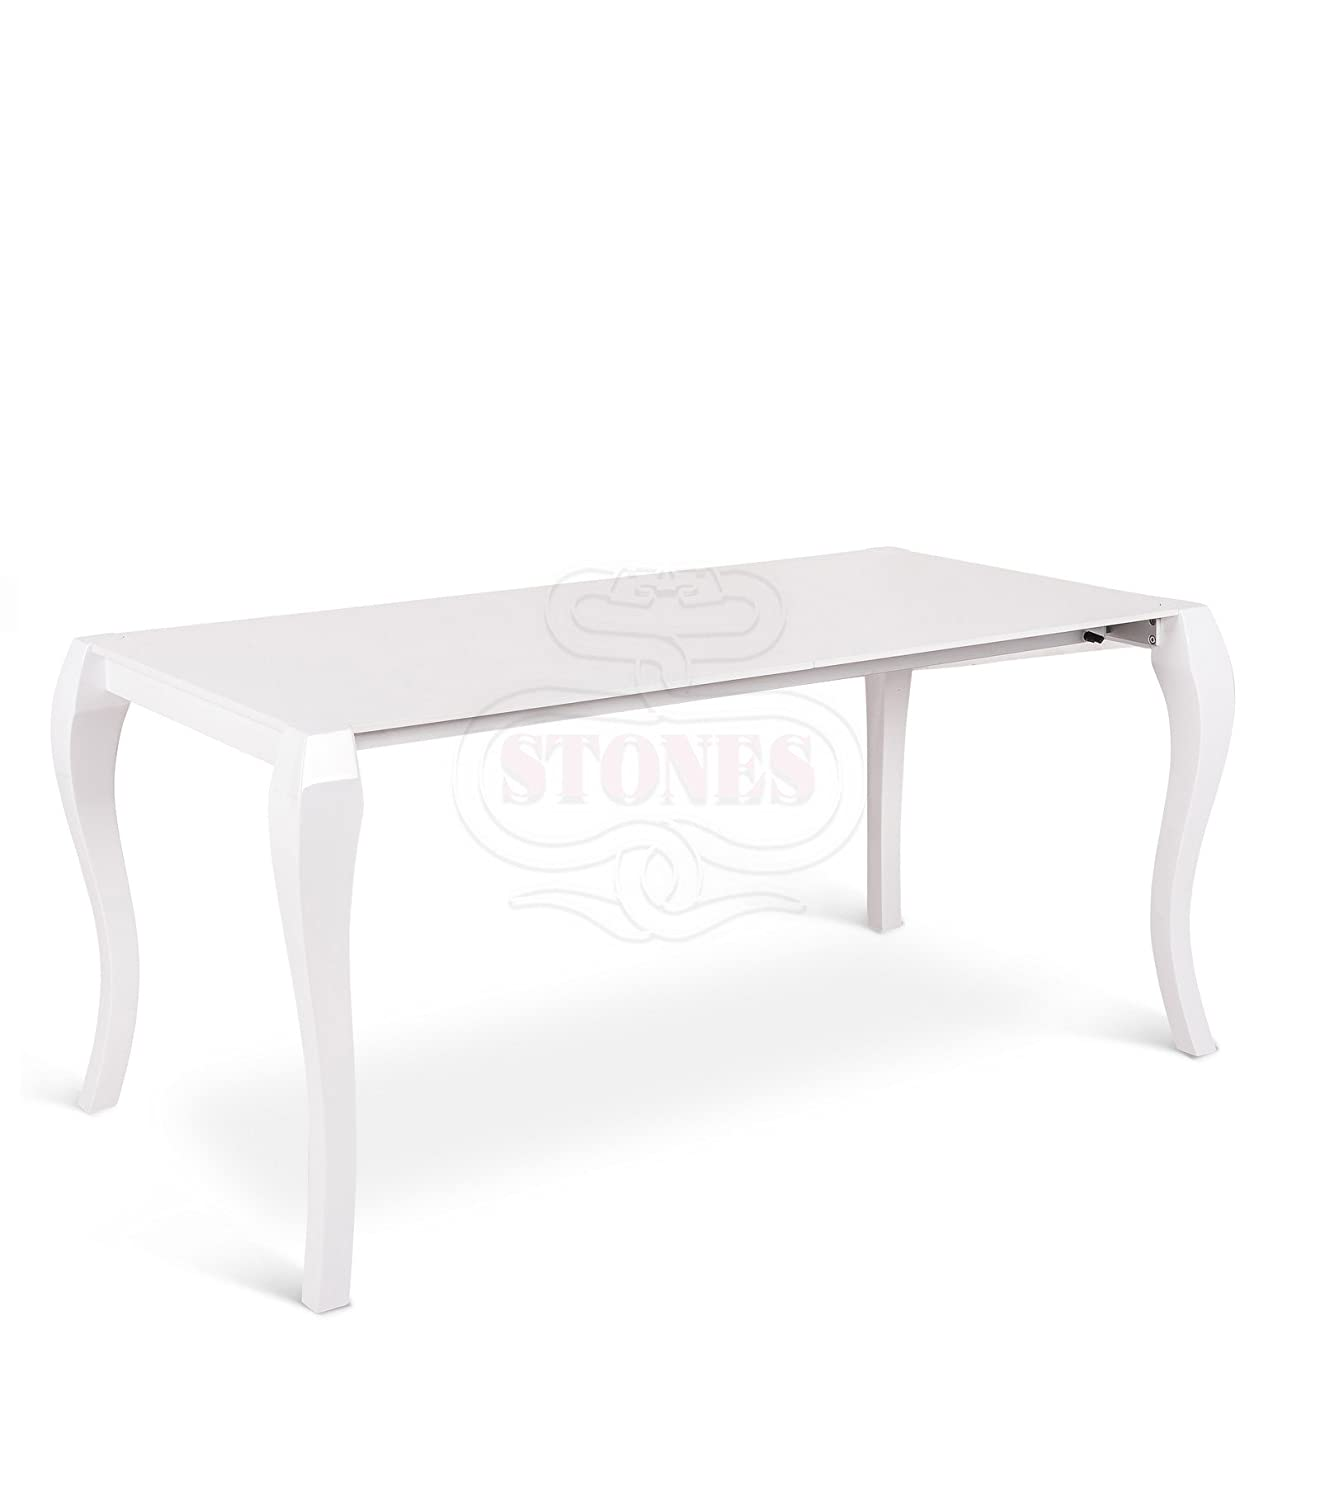 Stones Extending Table Shining Om 097 Measures 170 200 230 X